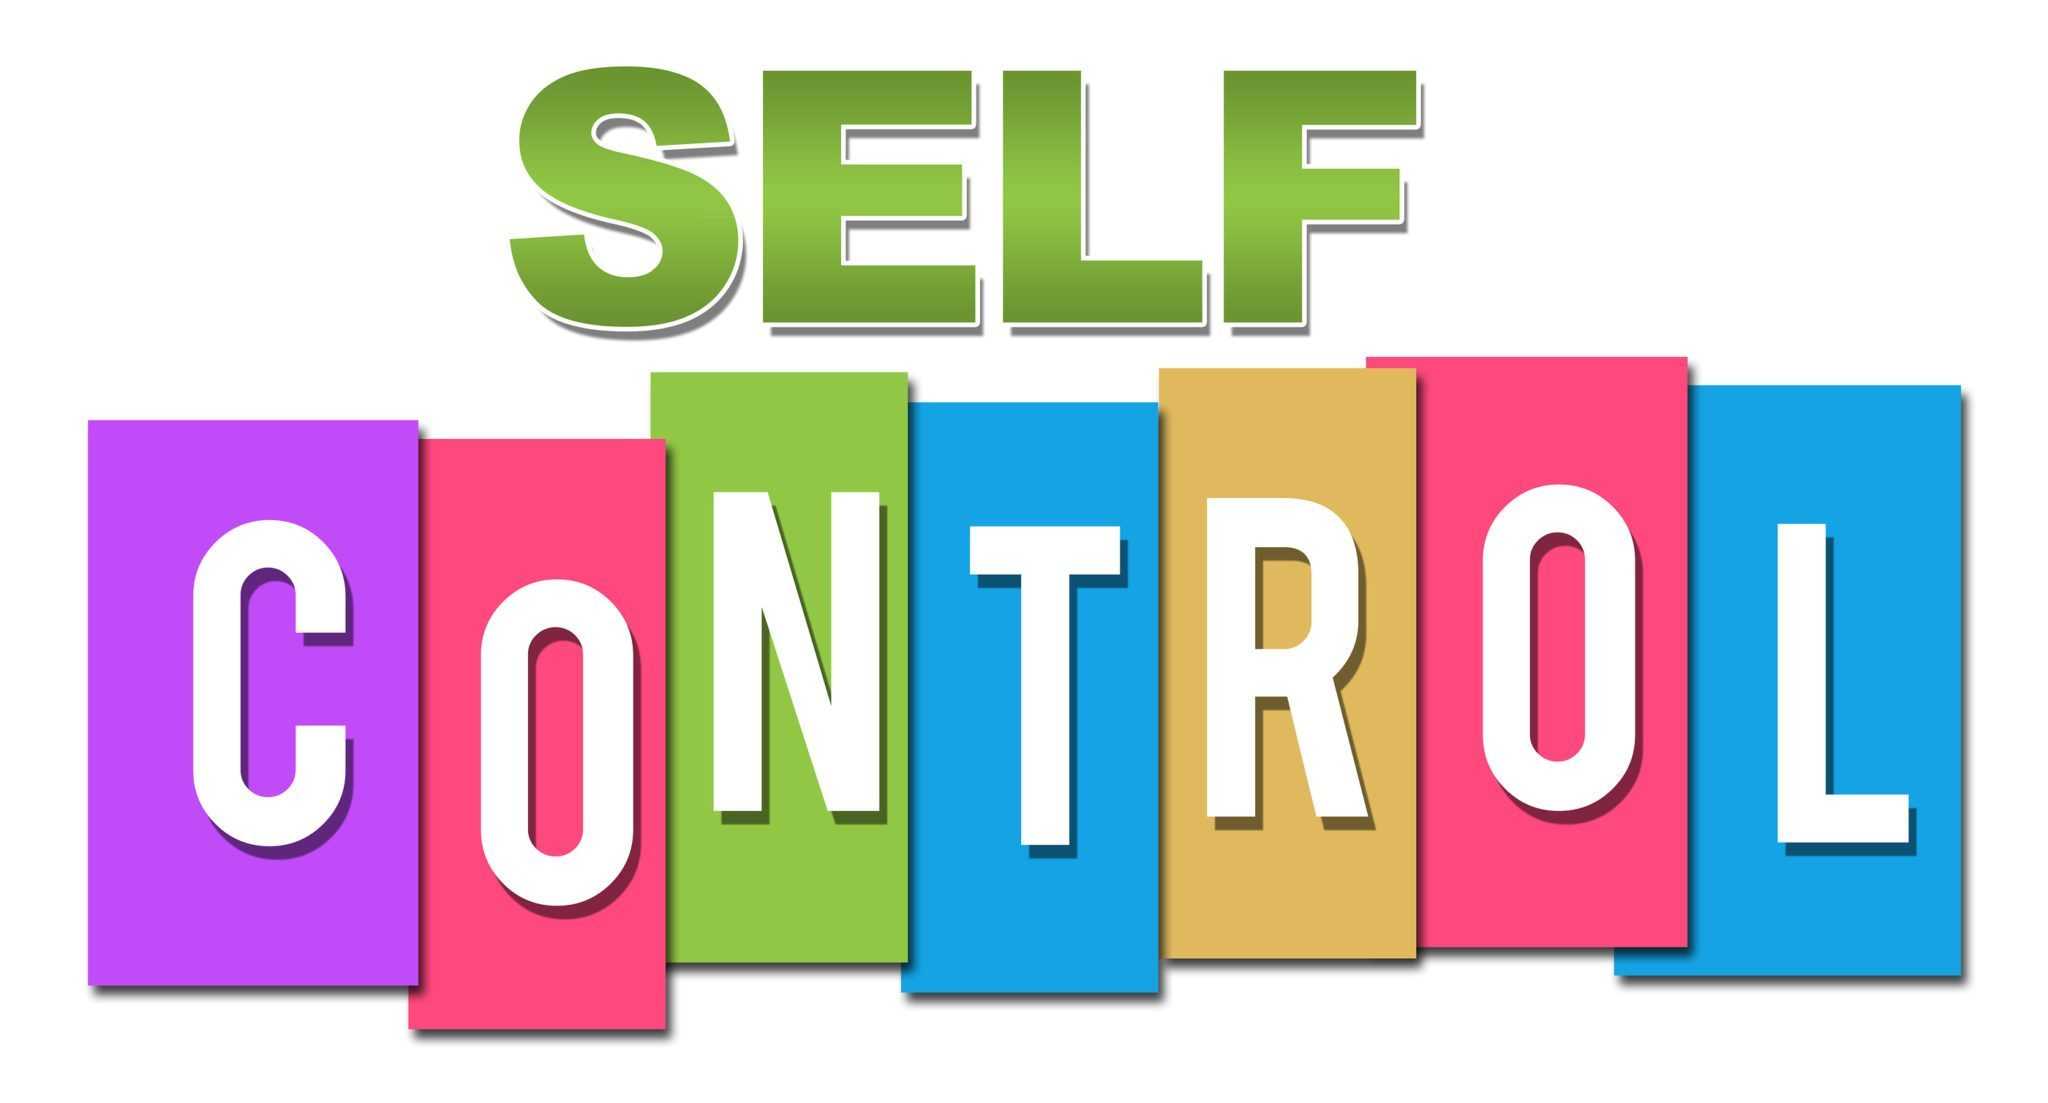 10 ways to start taking control (time management, goal setting, record tracking)